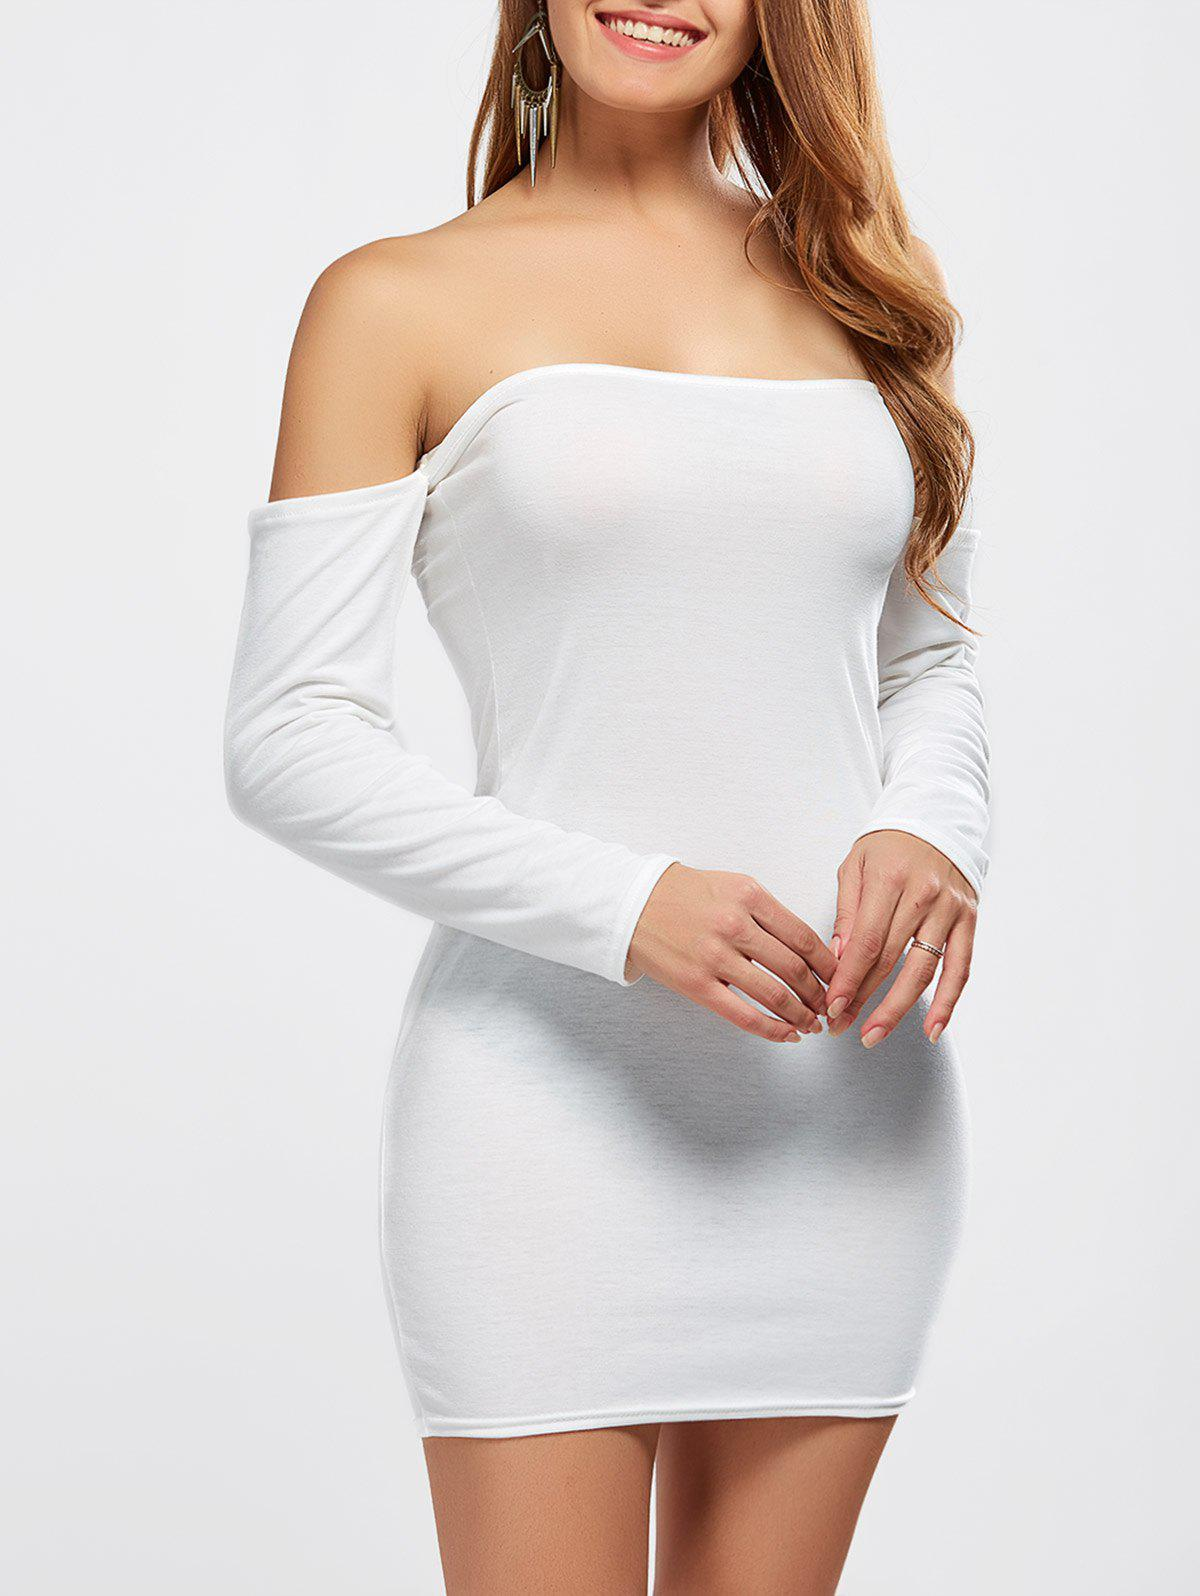 2019 OFF Shoulder Long Sleeve Fitted Tight Mini Dress  c0d4c043b